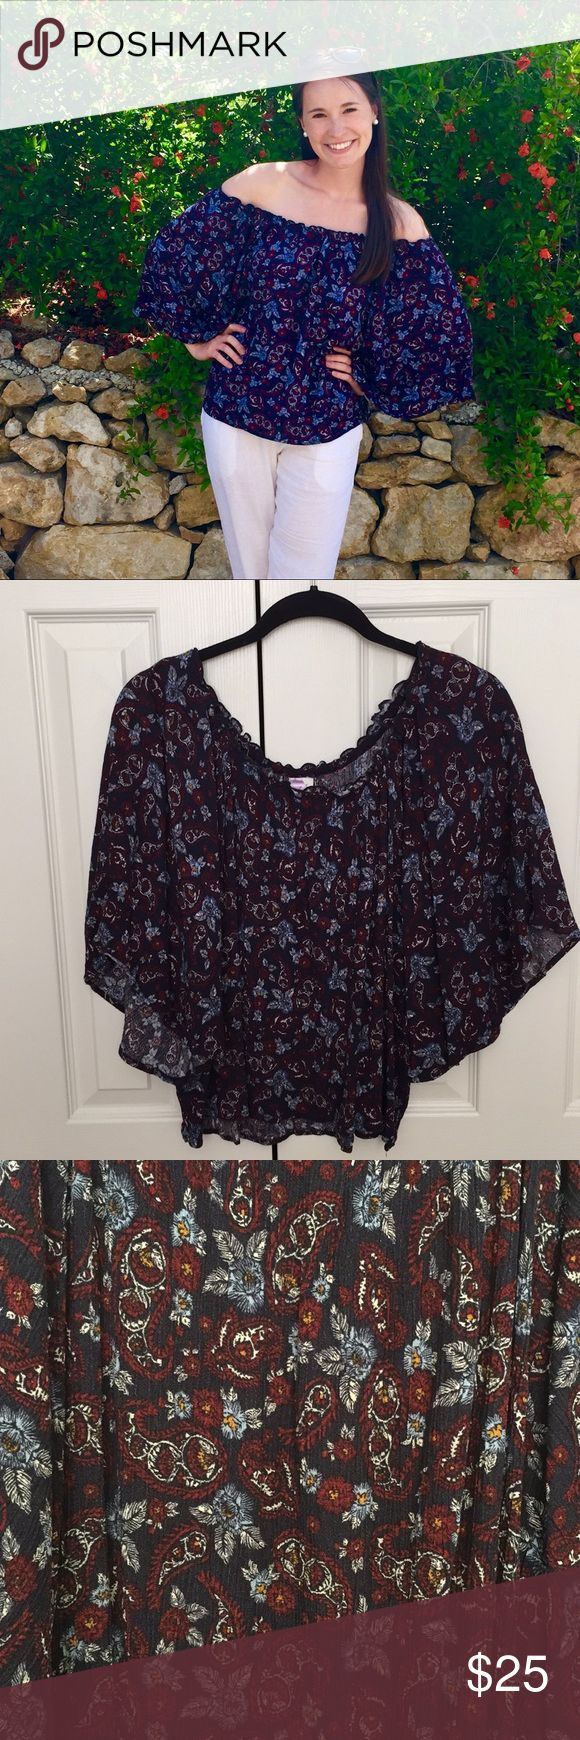 Off the shoulder top Francesca's off the shoulder top. Elastic band for fit around he shoulders. Excellent condition- worn once. The colors look more vibrant when outside (similar to the first picture). Francesca's Collections Tops